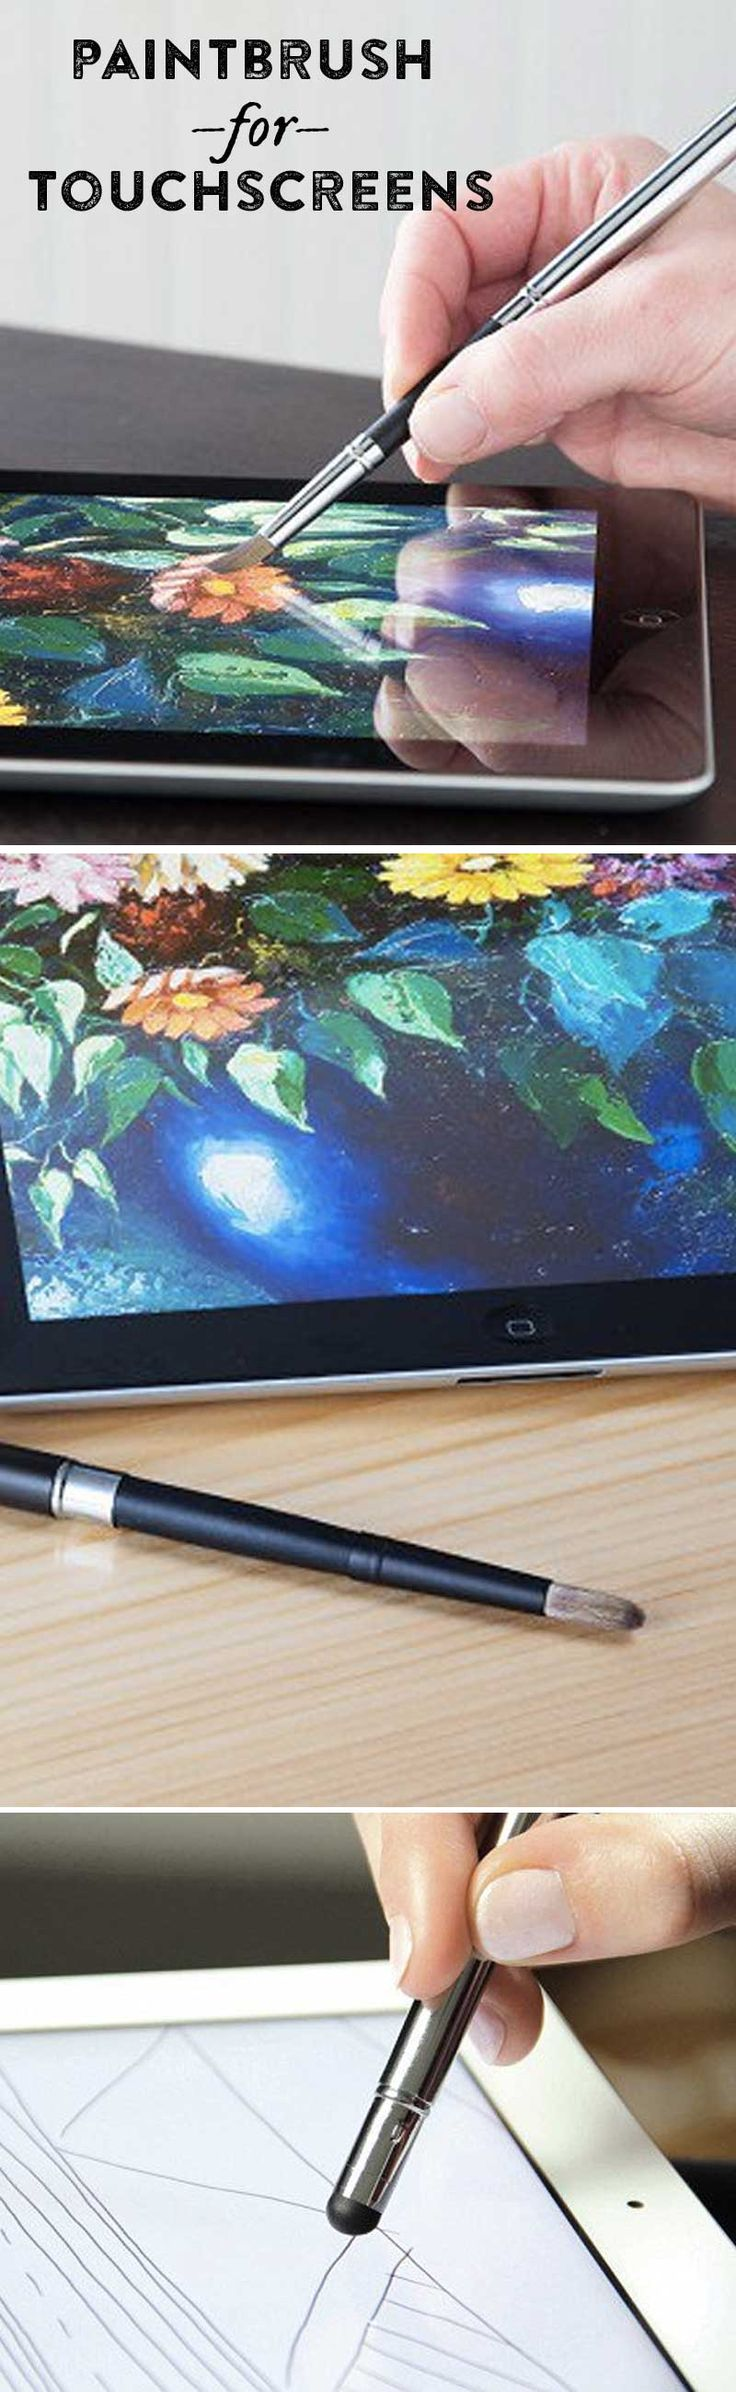 This digital paintbrush truly captures the tactile experience of painting—it's like a stylus for artists.